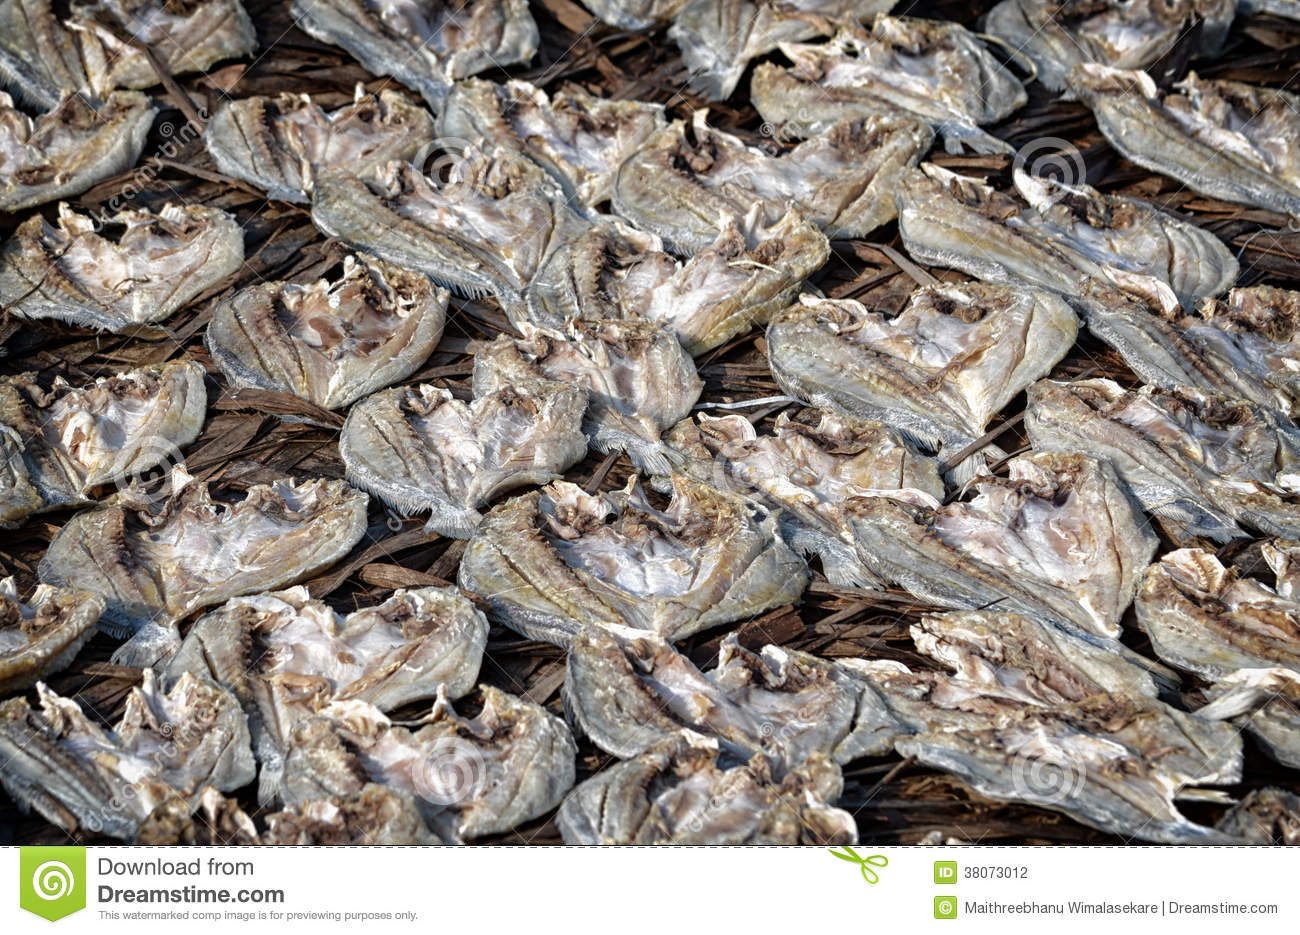 Dried salted fish stock photography image 38073012 for Dried salted fish